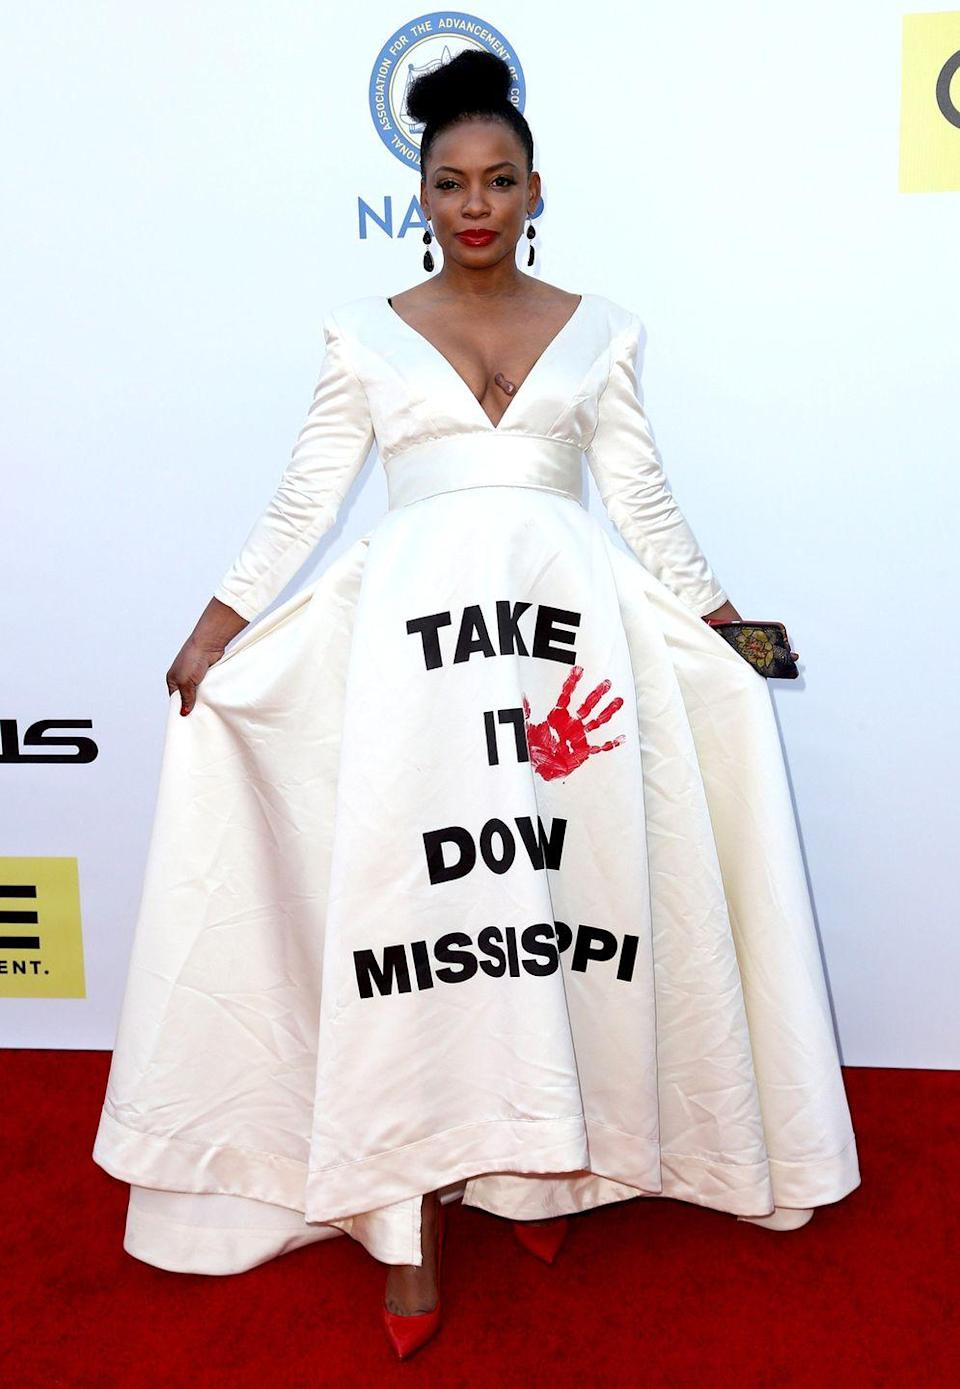 """<p>Actress Aunjanue Ellis wore this <a href=""""https://www.bet.com/news/celebrities/2016/02/06/everyone-is-talking-about-aunjanue-ellis--naacp-aw.html"""" rel=""""nofollow noopener"""" target=""""_blank"""" data-ylk=""""slk:statement-making dress"""" class=""""link rapid-noclick-resp"""">statement-making dress</a> to the 2016 NAACP Image Awards. The dress was emblazoned with """"Take it down Mississippi,"""" which was a reference to the the use of the confederate battle emblem on the official state flag at the time. In 2020, lawmakers voted to <a href=""""https://www.nytimes.com/2020/06/30/us/mississippi-flag.html"""" rel=""""nofollow noopener"""" target=""""_blank"""" data-ylk=""""slk:change Mississippi's state flag"""" class=""""link rapid-noclick-resp"""">change Mississippi's state flag</a>. </p>"""